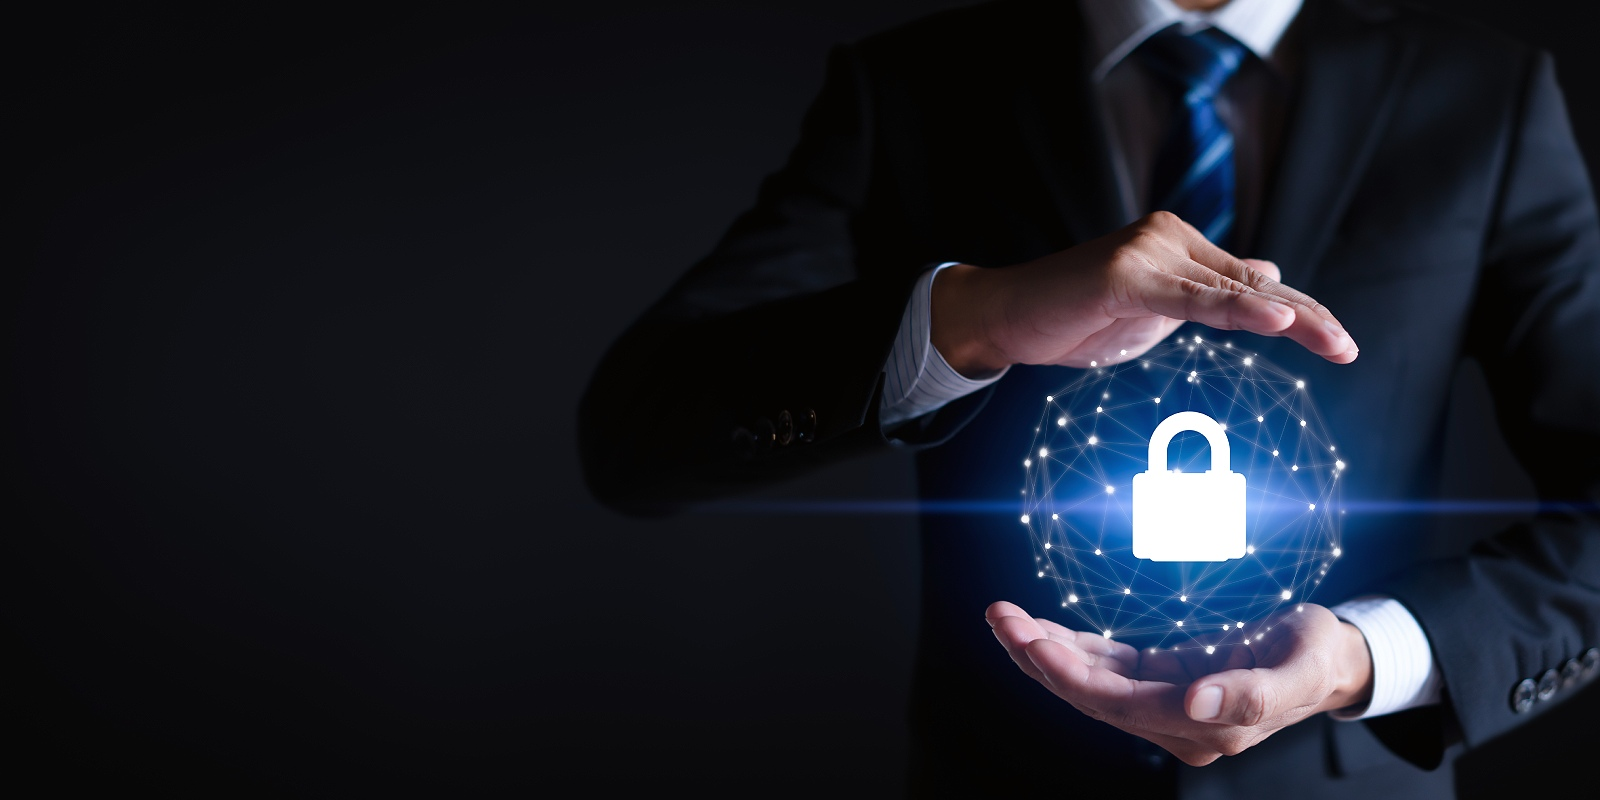 A concept for cybersecurity consulting